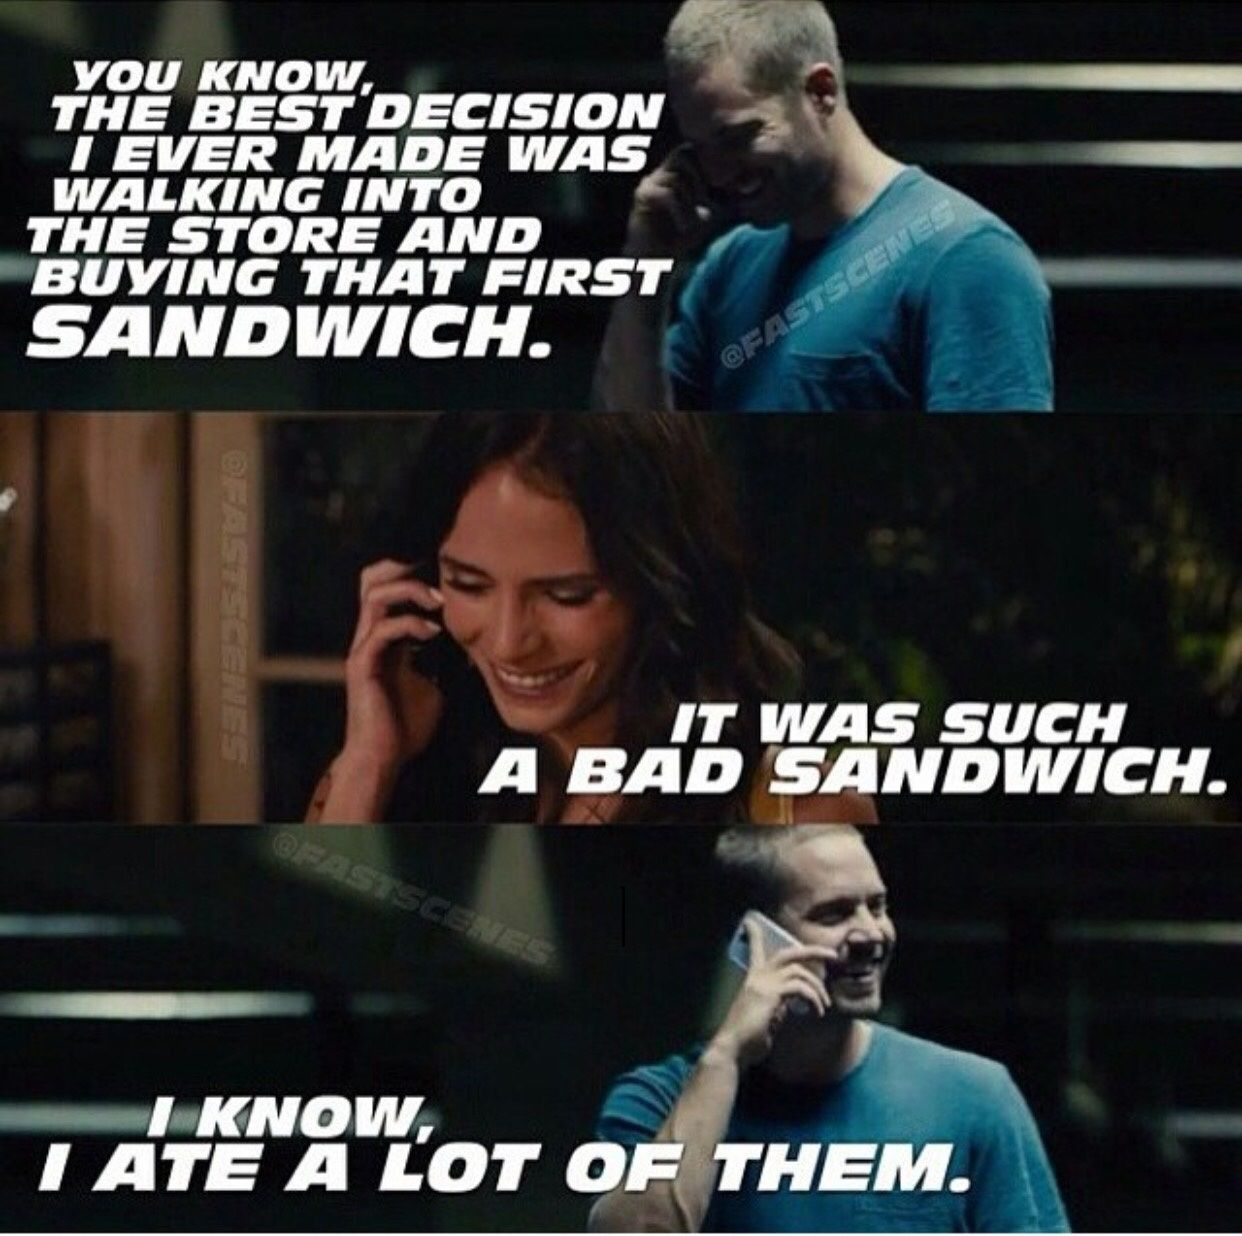 Fast And Furious Quote Brilliant Fast And Furious 7 List Of Movies Movies In Theaters Near Me Fast And Furious Memes Fast And Furious Fast And Furious Cast